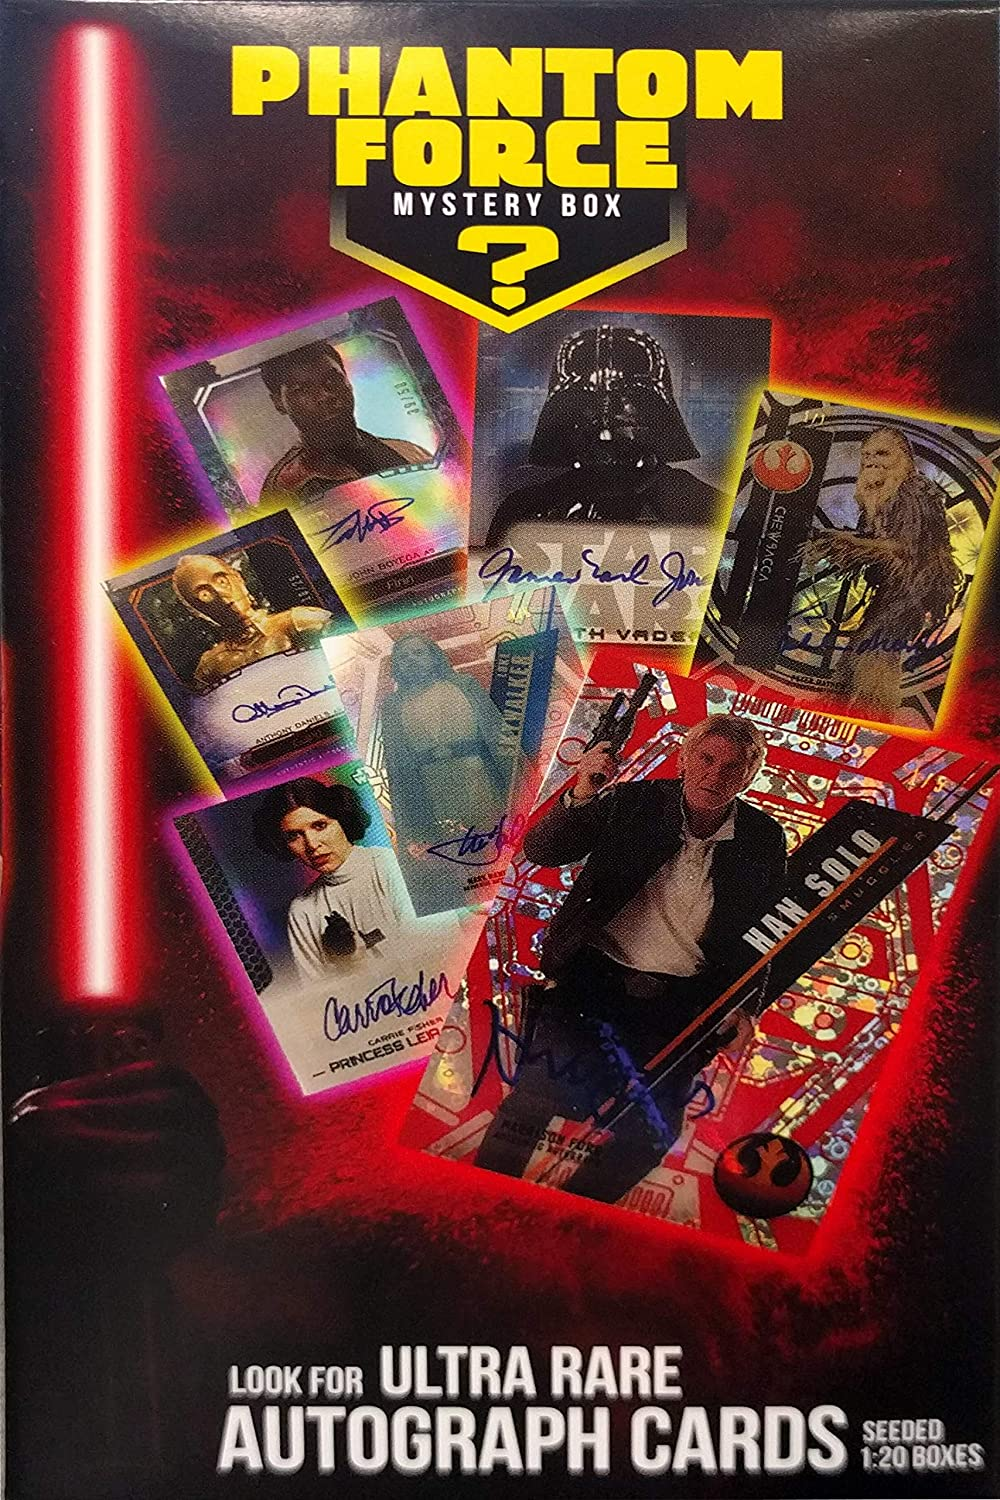 4 Collectible Disc Pack 4 Factory Sealed Pack Look for Ultra Rare Autograph Cards Seeded 1: 20 Boxes Star Wars Cards: Phantom Force Mystery Box Value Box